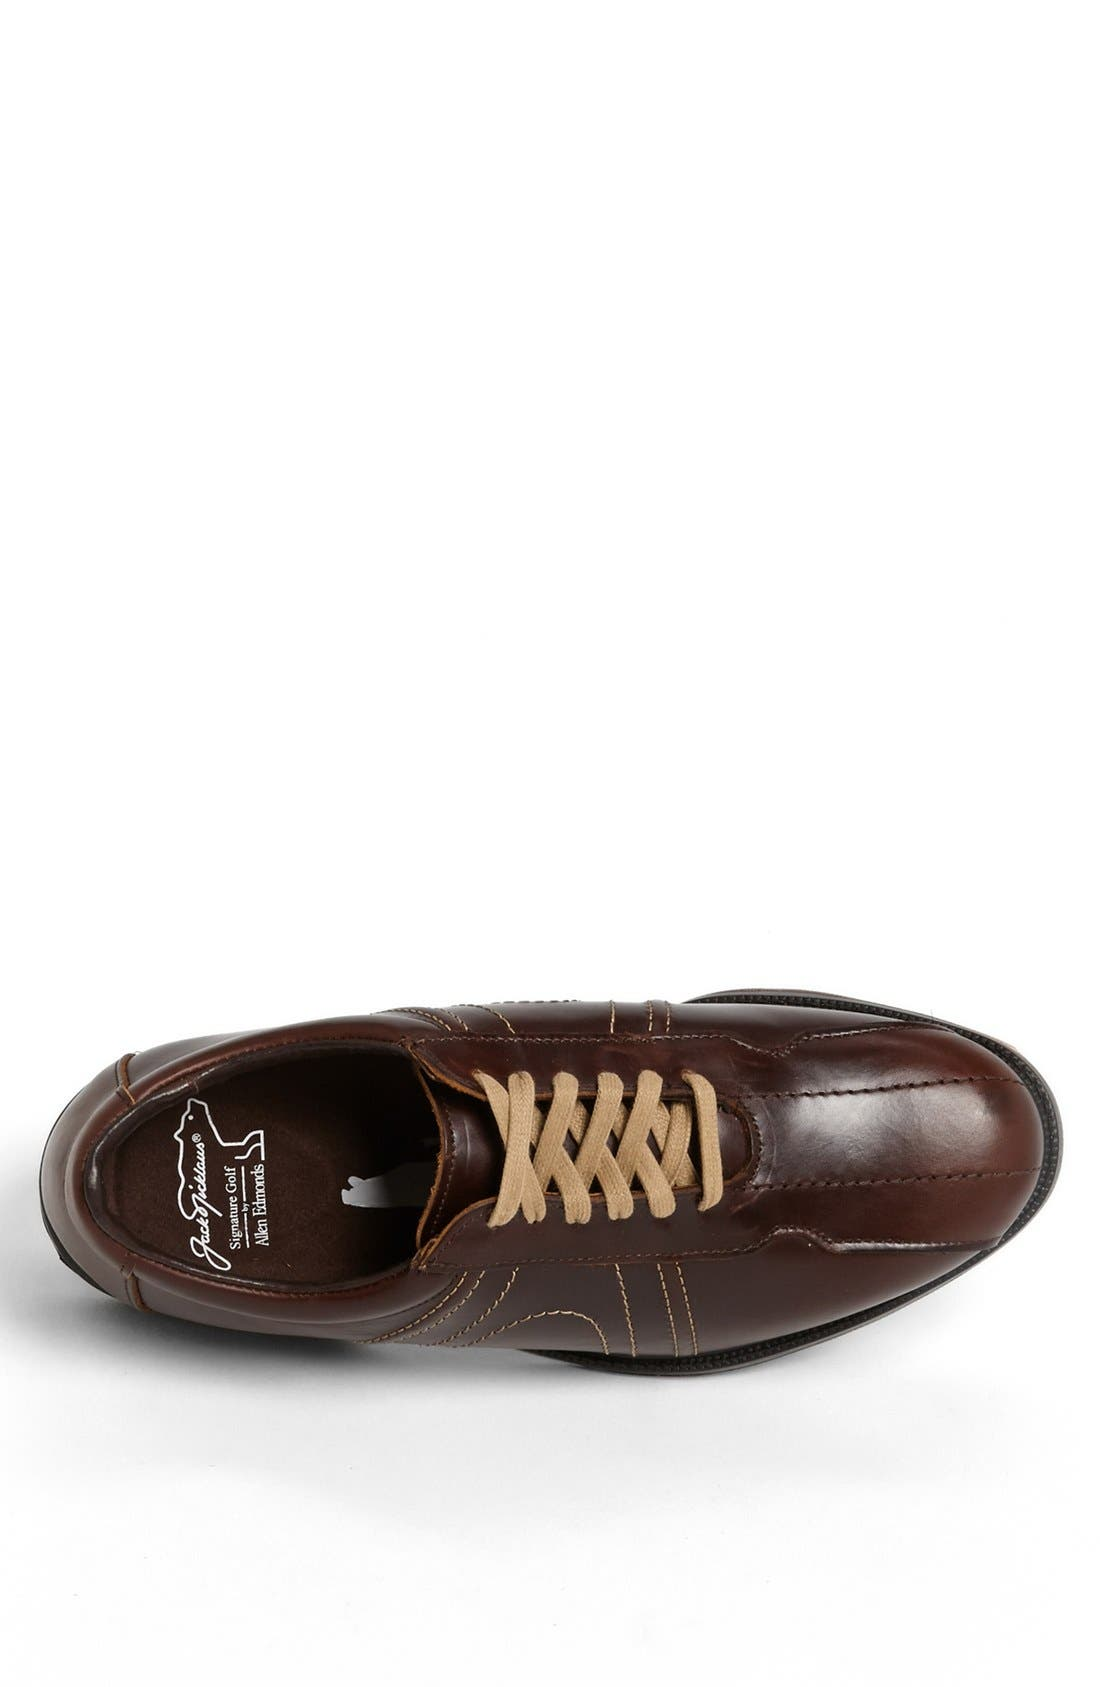 Alternate Image 3  - Allen Edmonds 'Jack Nicklaus - Desert Mountain' Golf Shoe   (Men)